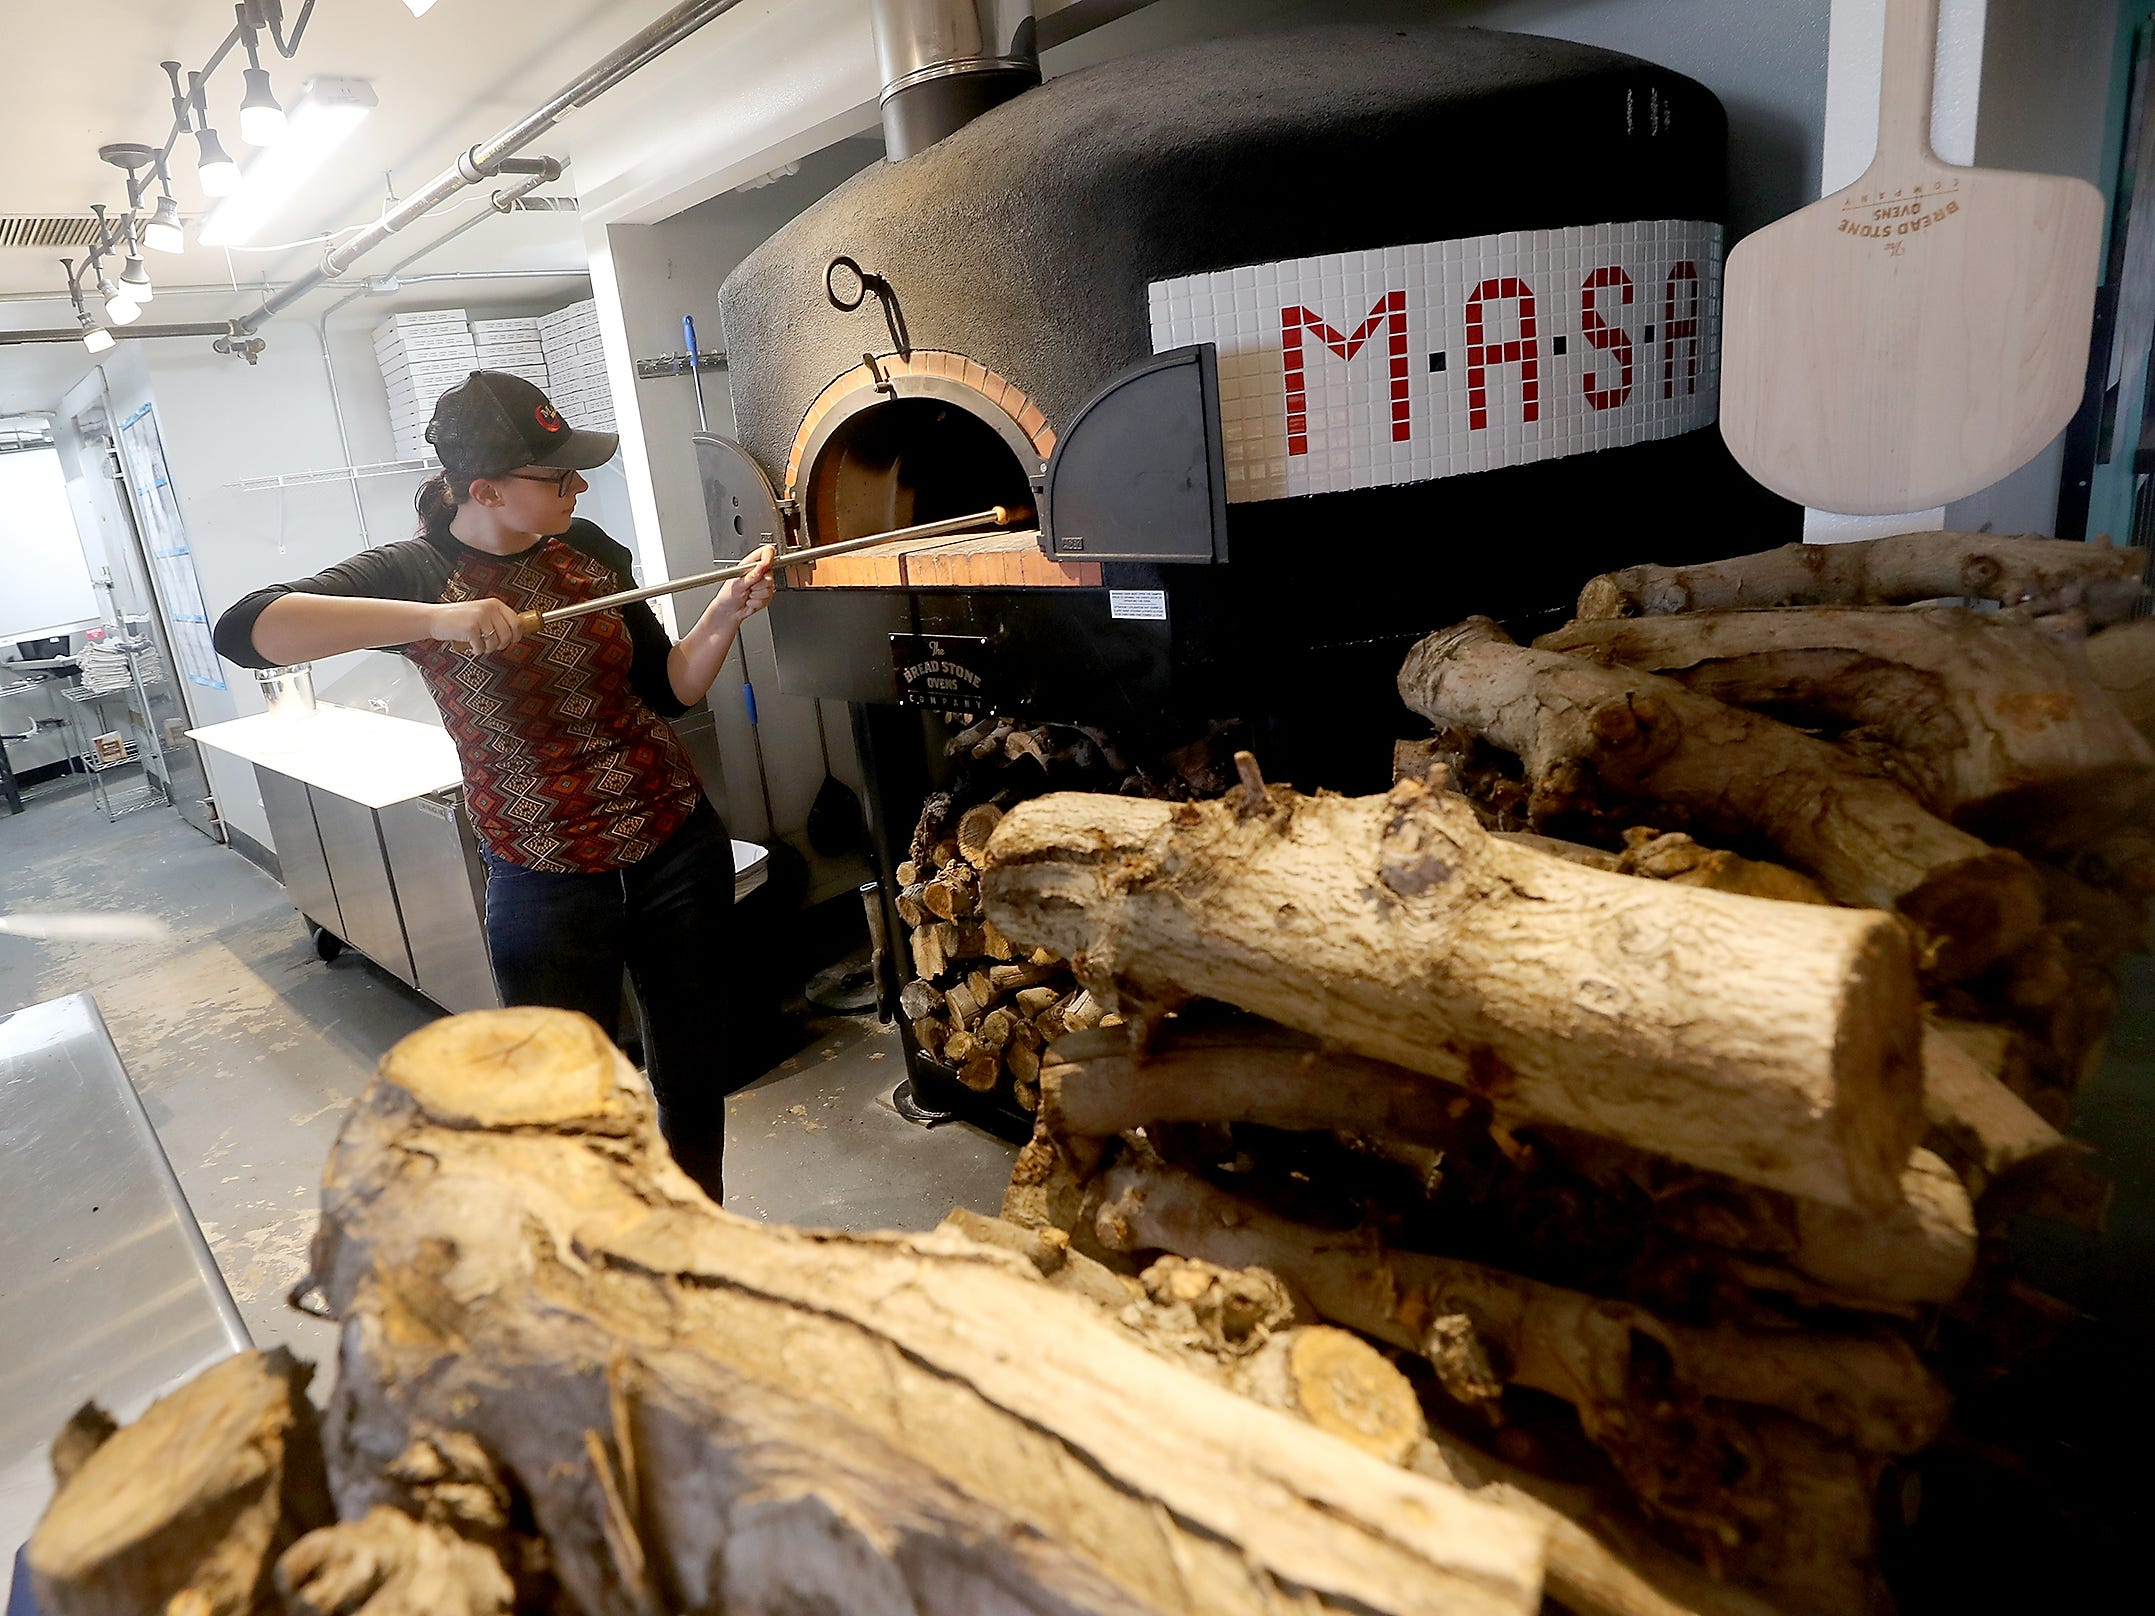 Conner Rains stokes the wood-fired pizza oven at M*A*S*A Pizza in Port Orchard on Thursday, April 4, 2019.